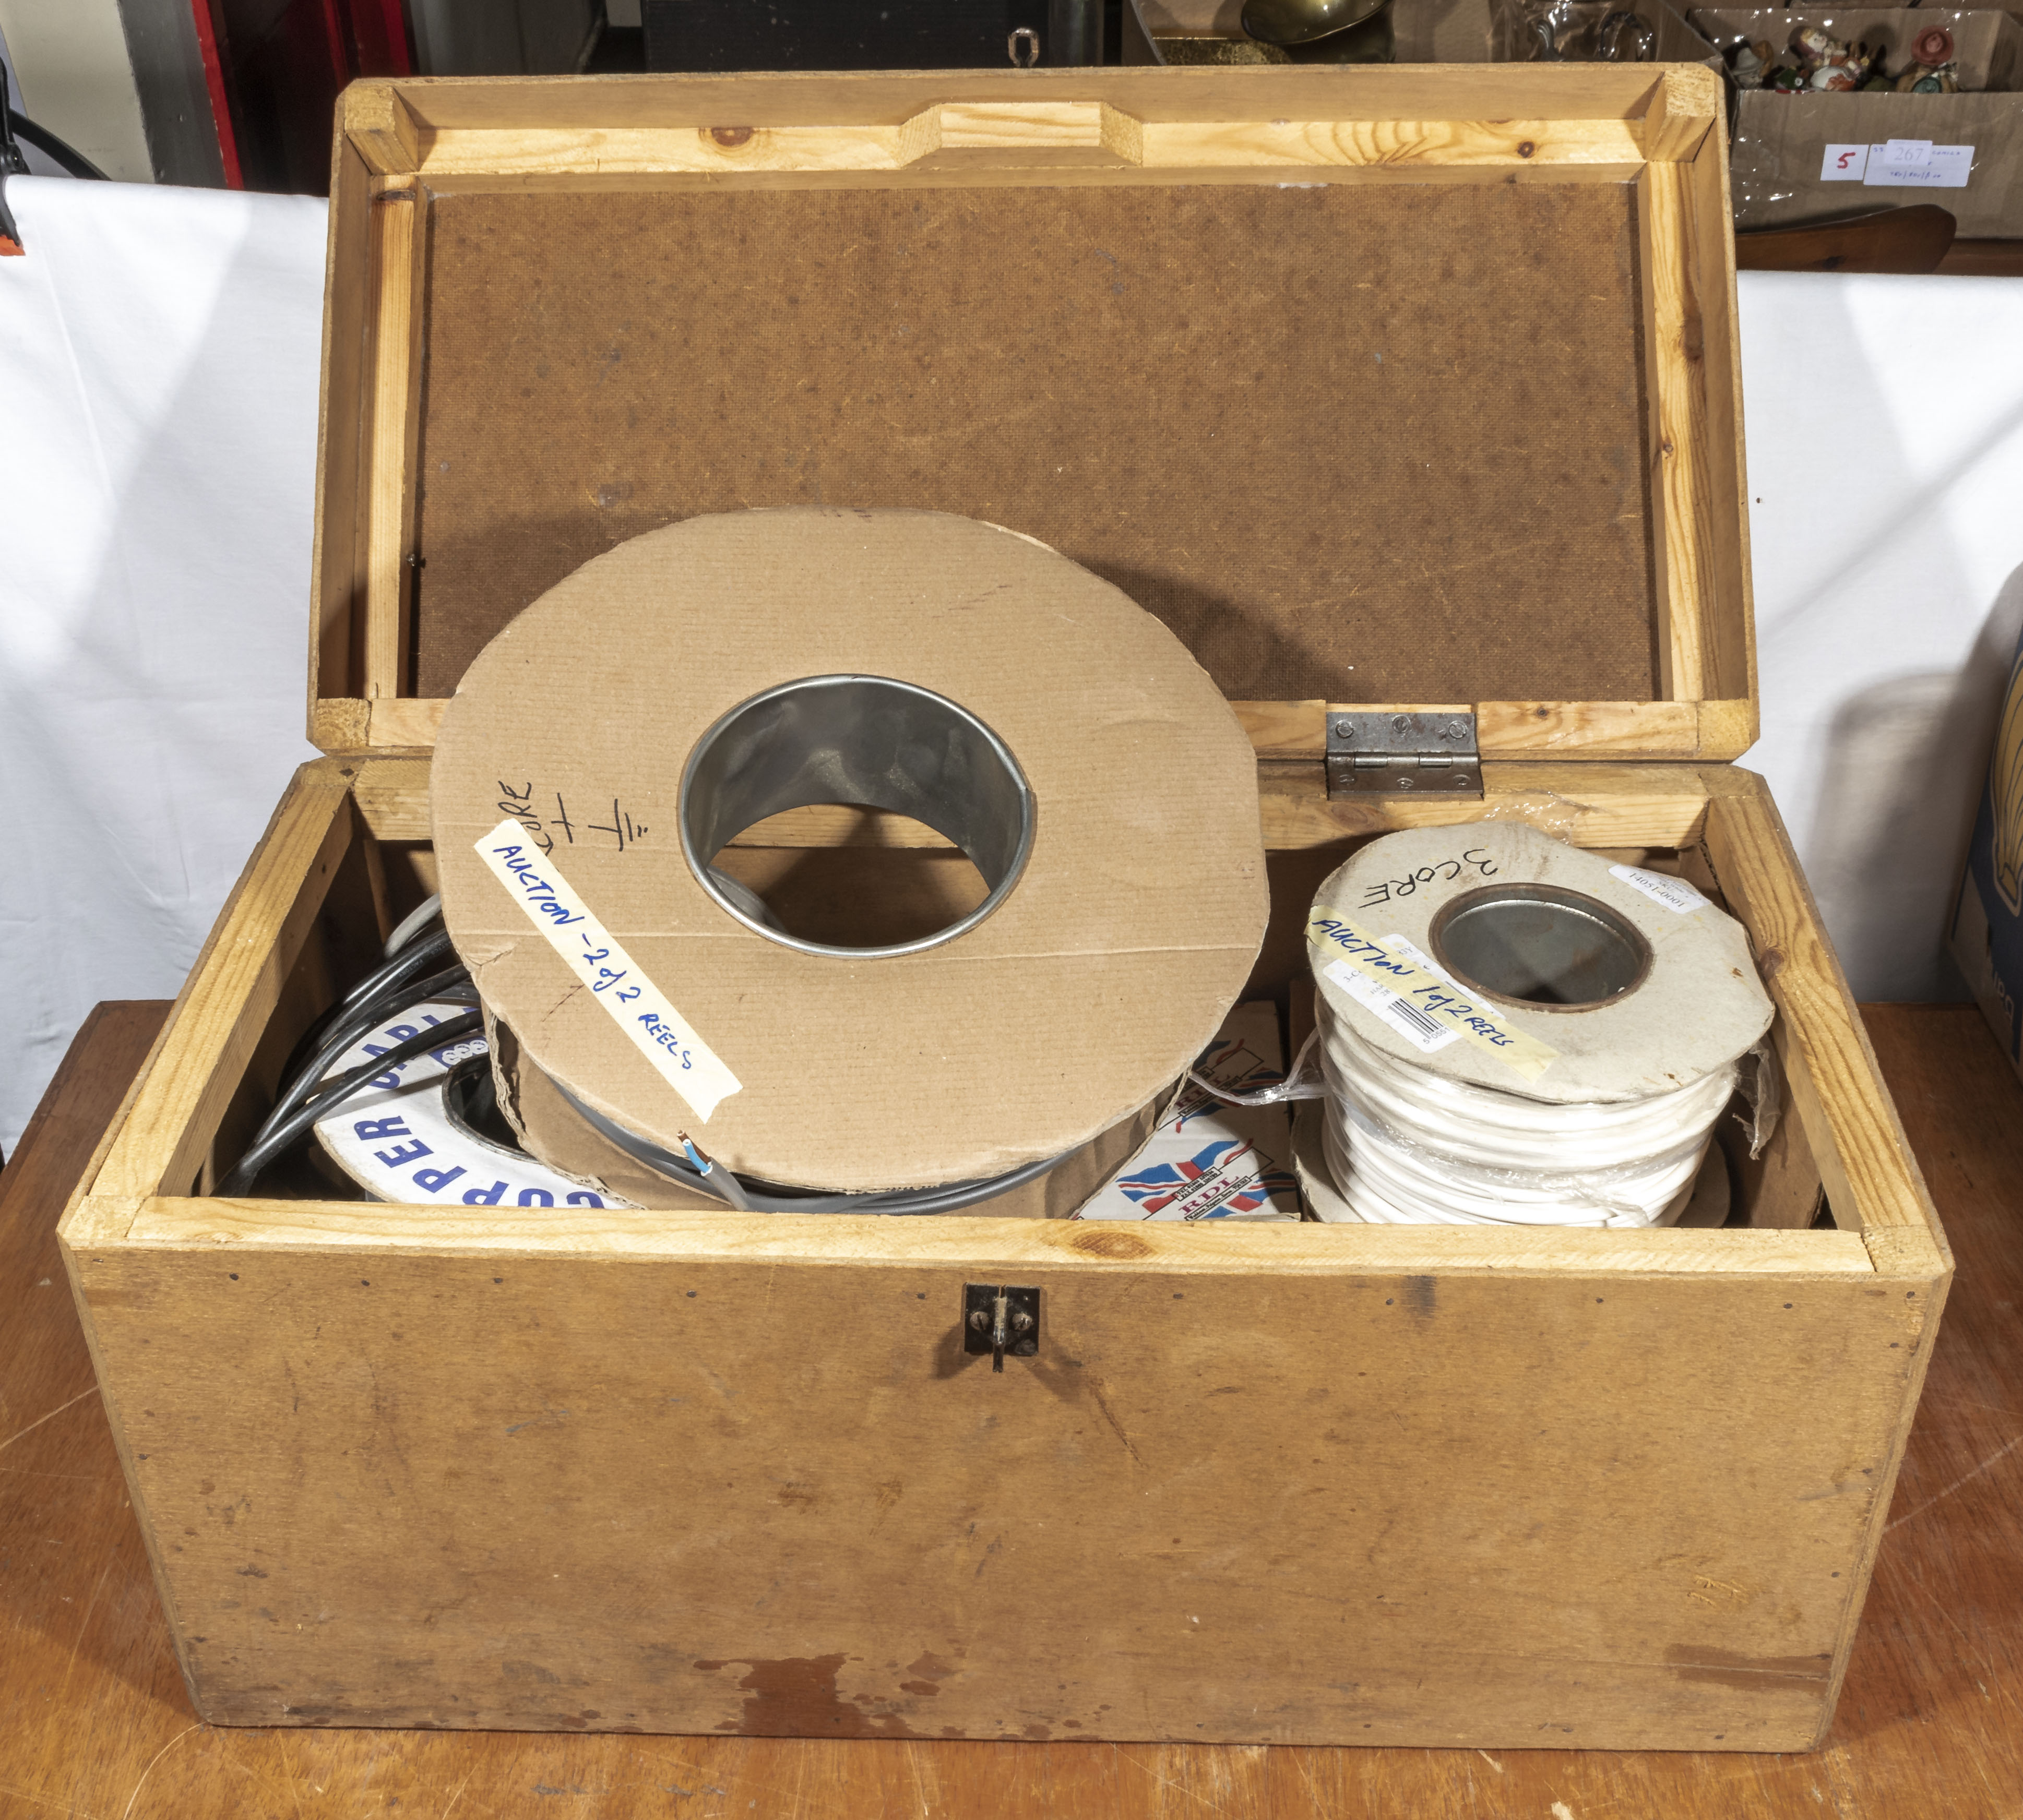 Wooden box containing reels of electric cable